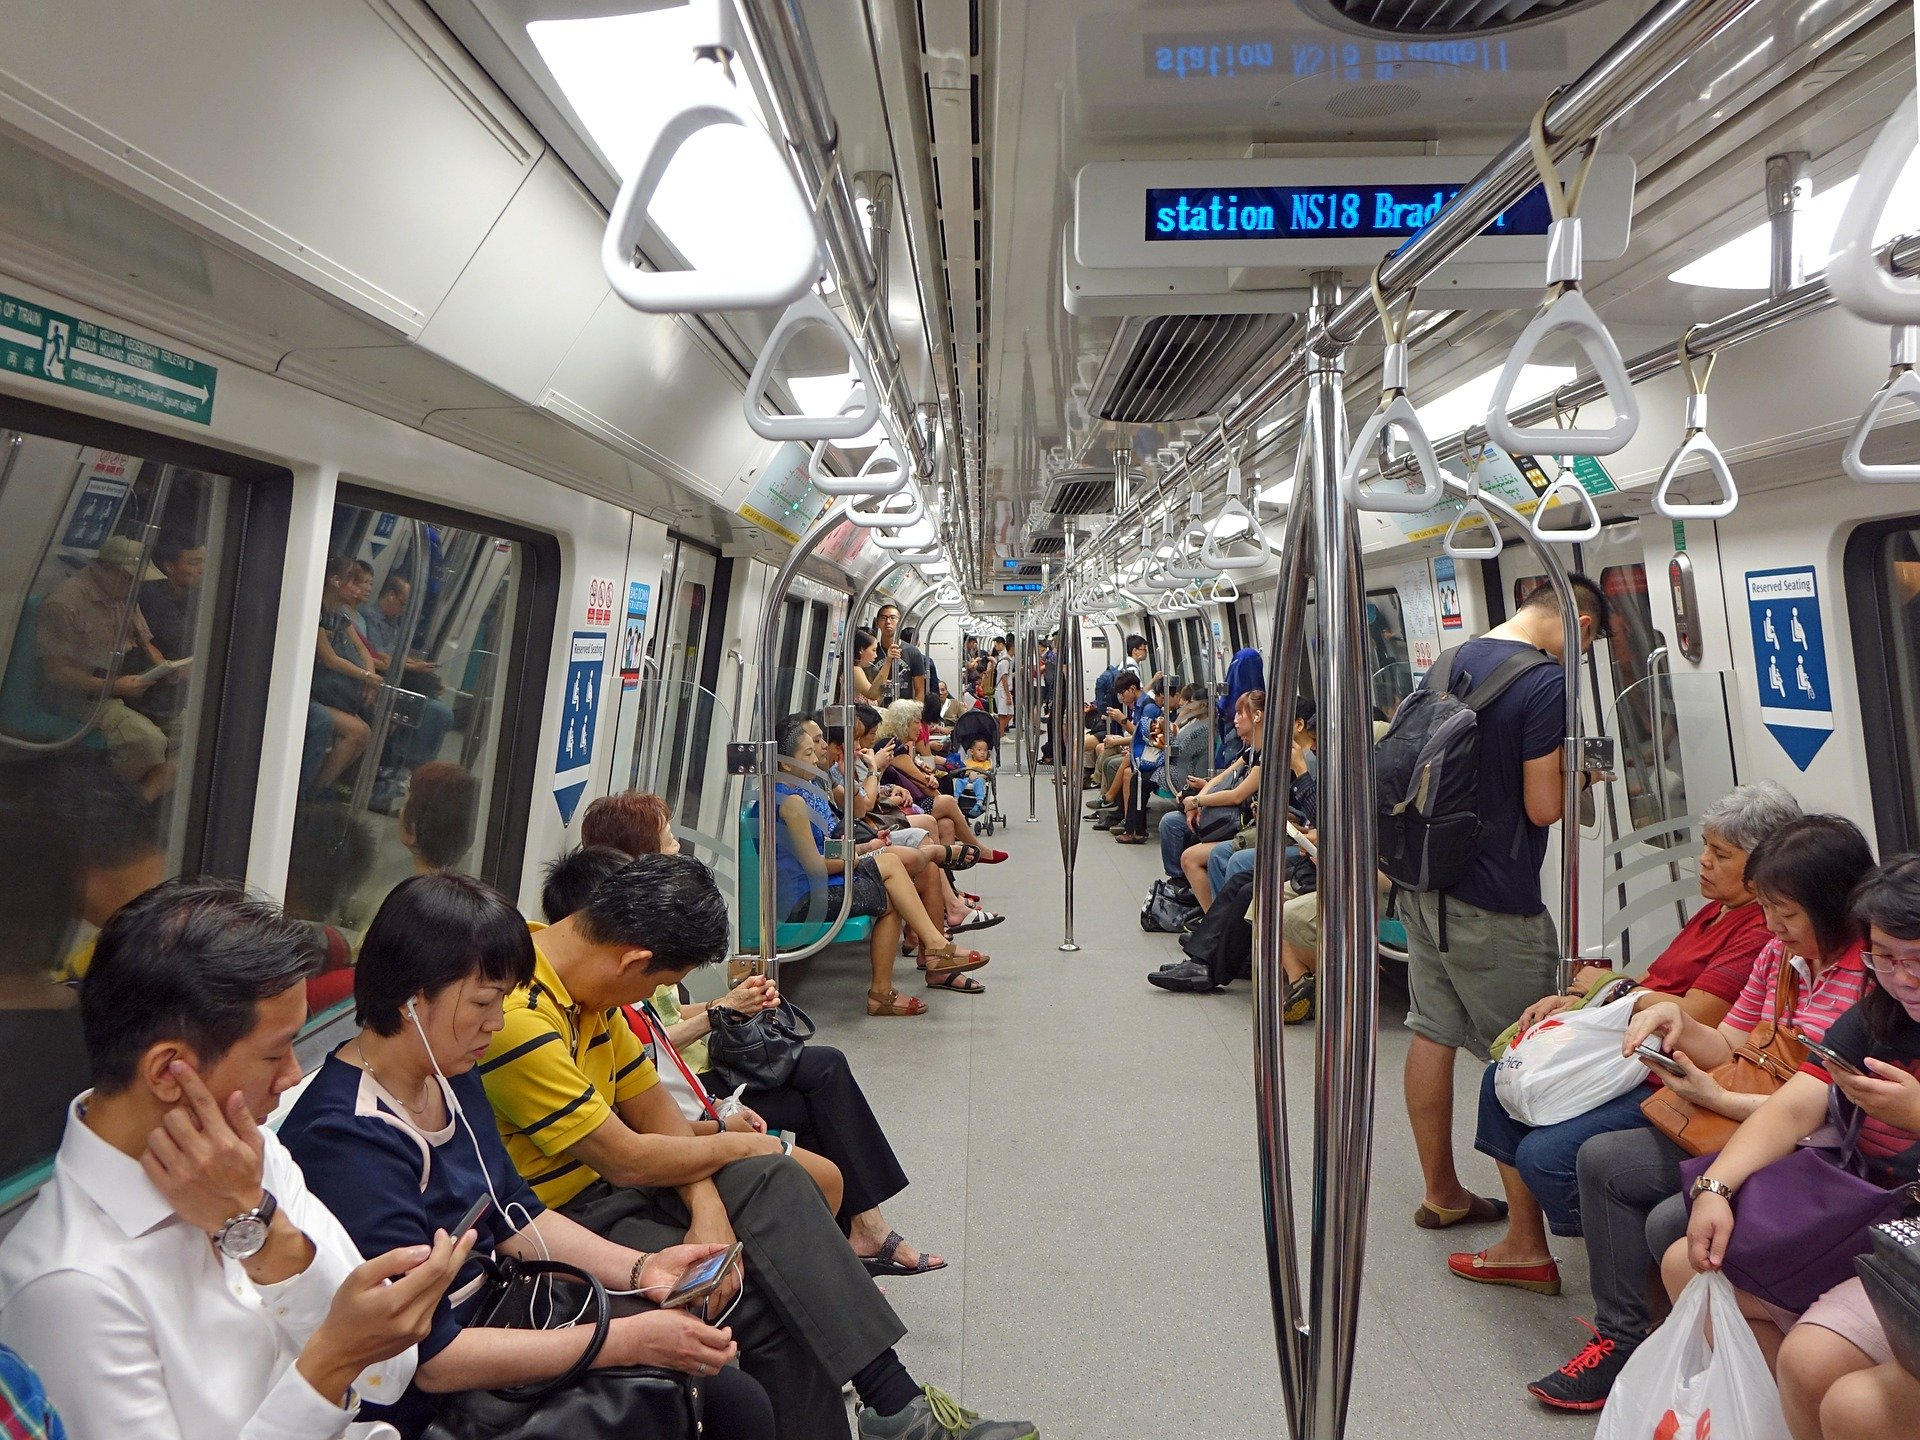 MRT train carriage in Singapore